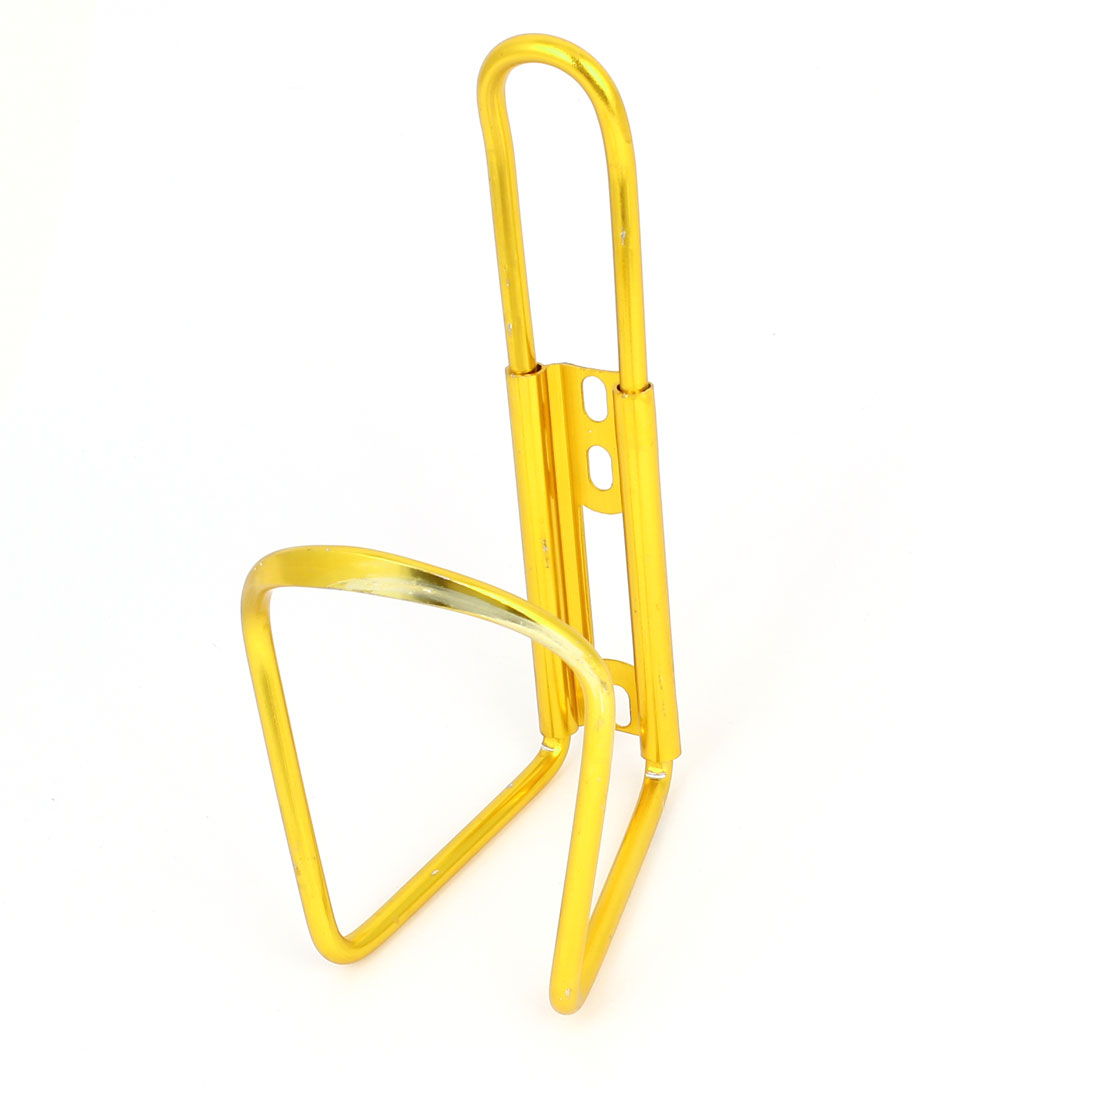 Sports Bike Bicycle Gold Tone Aluminum Alloy Water Bottle Cage Holder